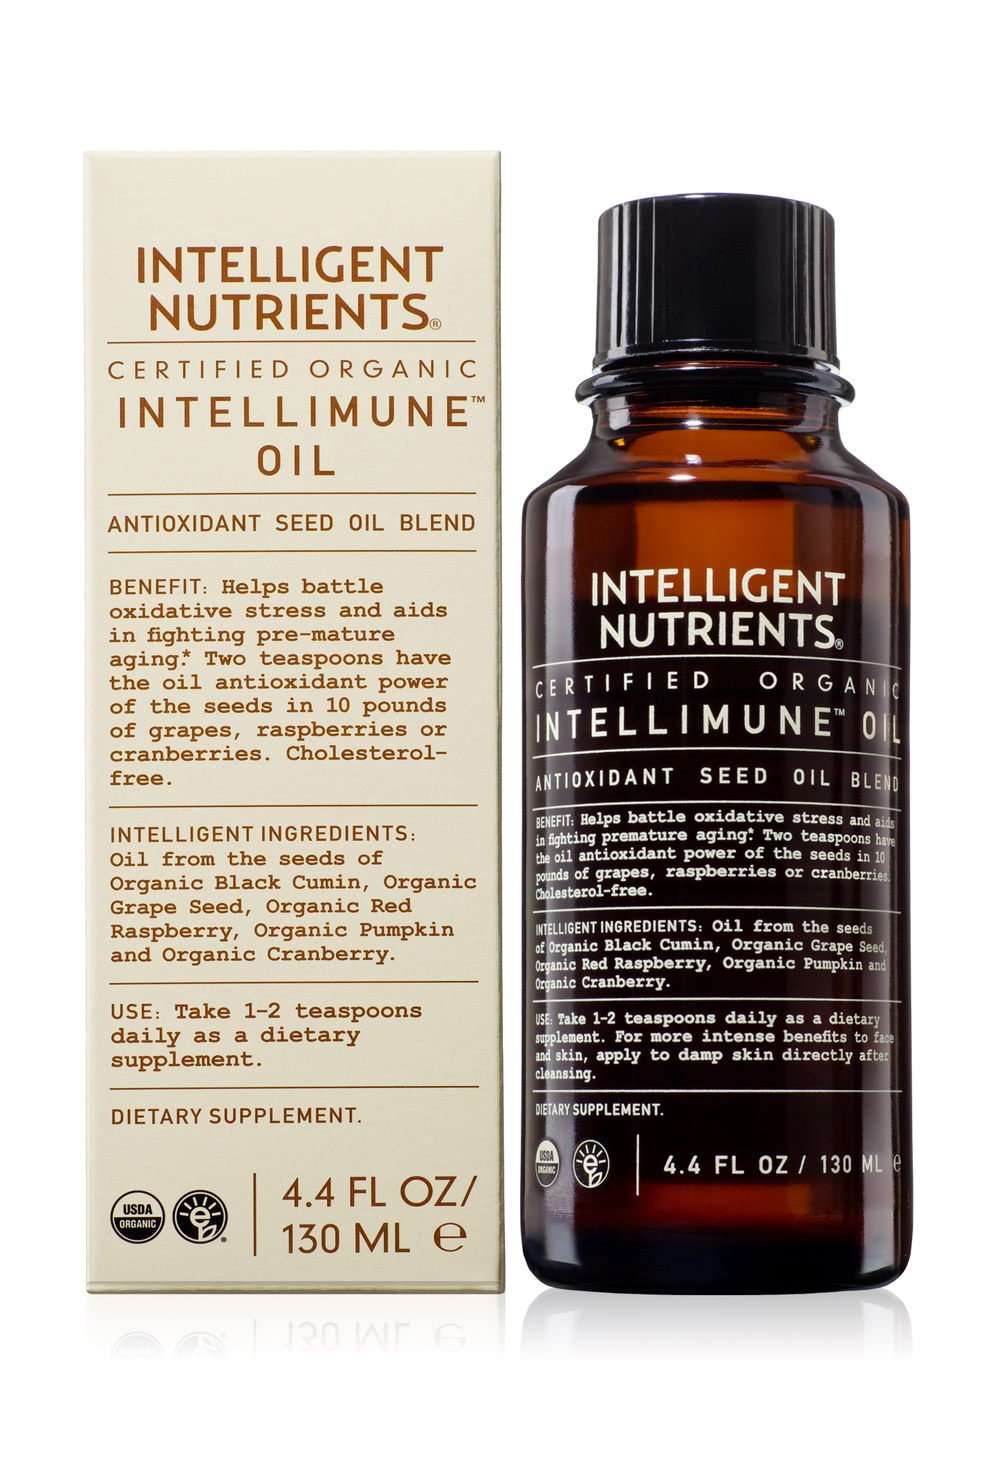 <p>Intelligent Nutrients creator Horst Rechelbacher always believed in the importance of beauty from the inside out. Intellimune Oil and Powder offer a certified organic source of nutrition with antioxidant properties that promote supple skin and silky hair. According to McCauley, this nutritional supplement offers his salon a unique point of difference in the retail assortment.</p>